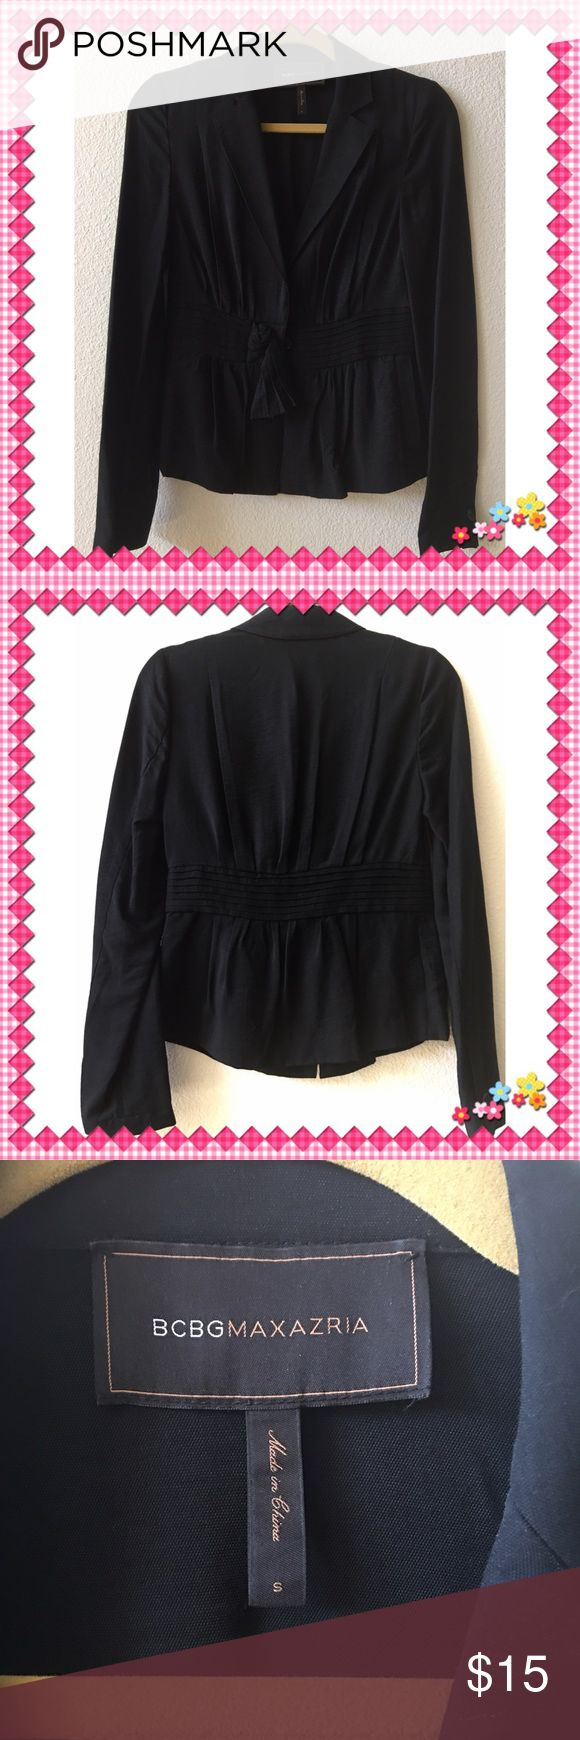 BCBGMAXAZRIA Top Beautiful black long sleeves from BCBGMAXAZRIA. Size small. In very good condition. No trade ❌ BCBGMaxAzria Tops